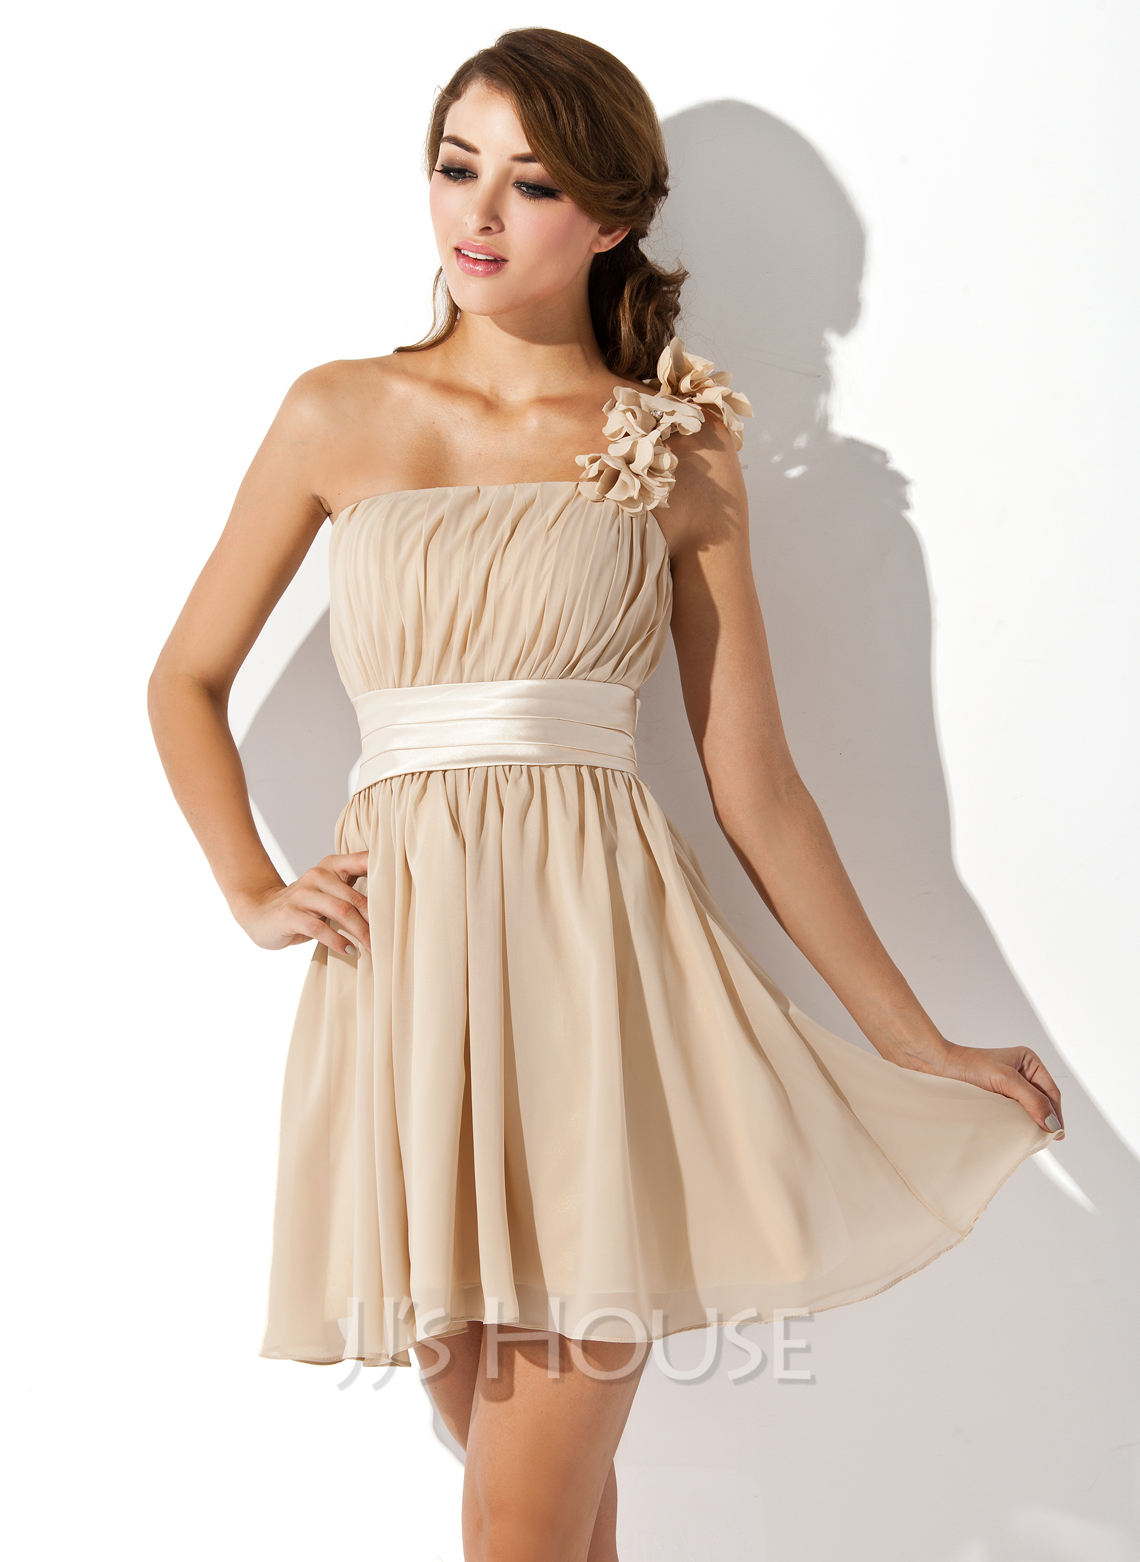 A-Line/Princess One-Shoulder Short/Mini Chiffon Bridesmaid Dress With Ruffle Flower(s) Bow(s)